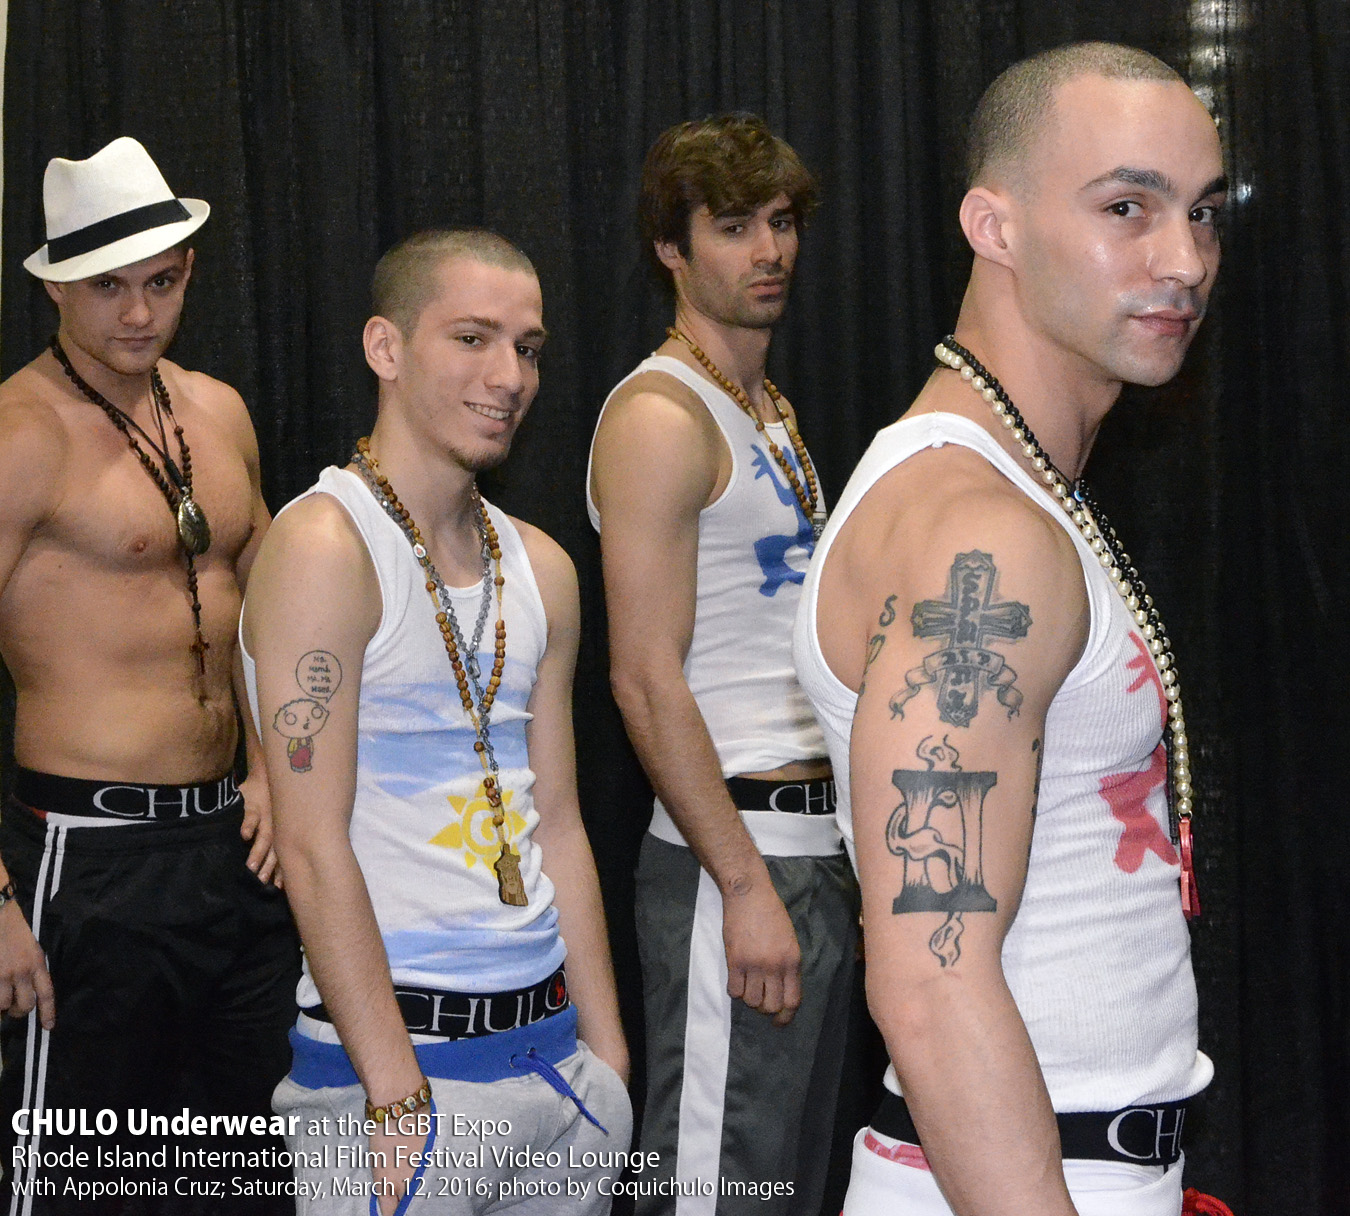 CHULO at the LGBT Expo 008